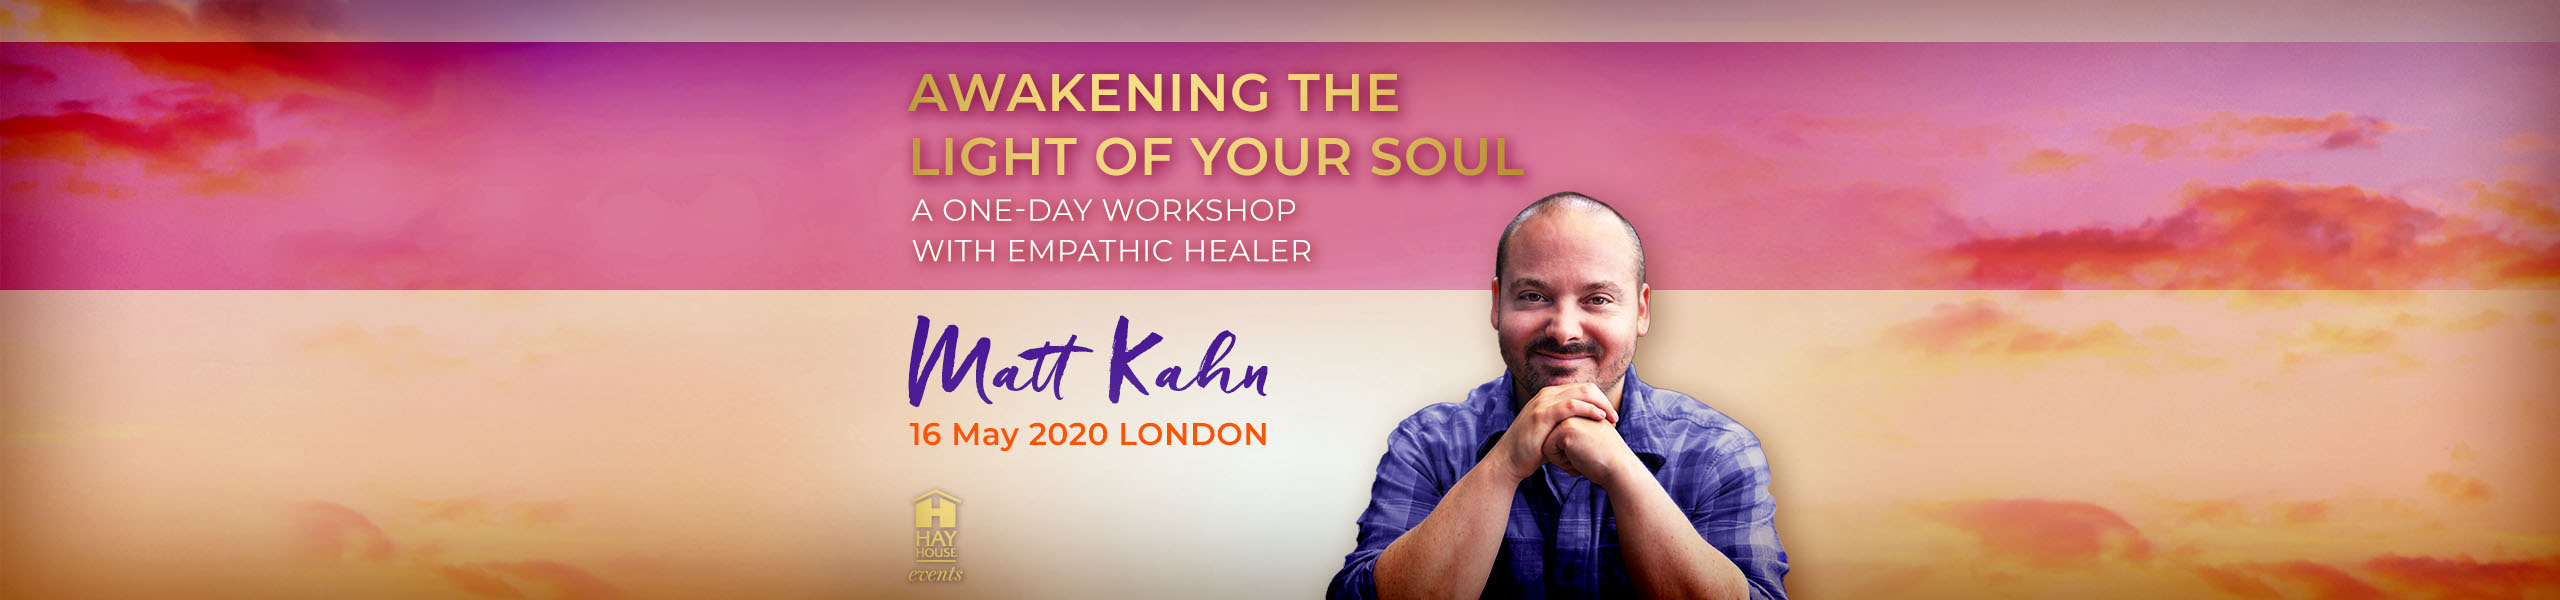 Awakening the Light of Your Soul - General